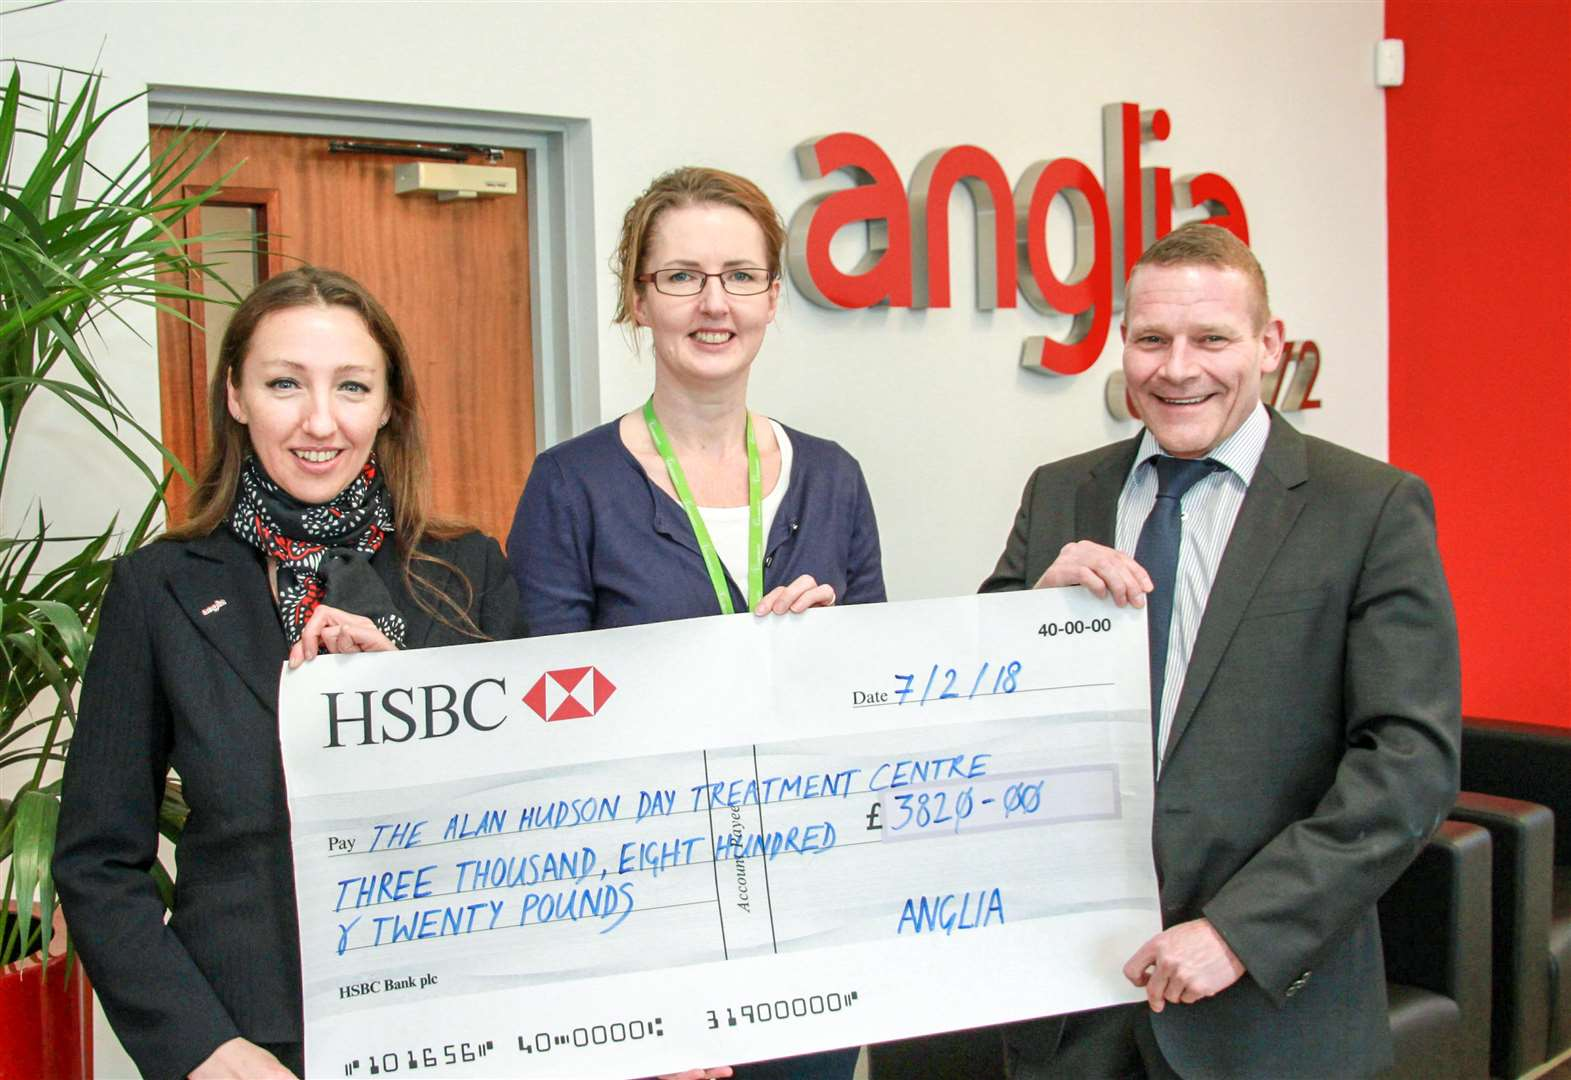 Wisbech firm Anglia Components gives £4,000 each to two charities